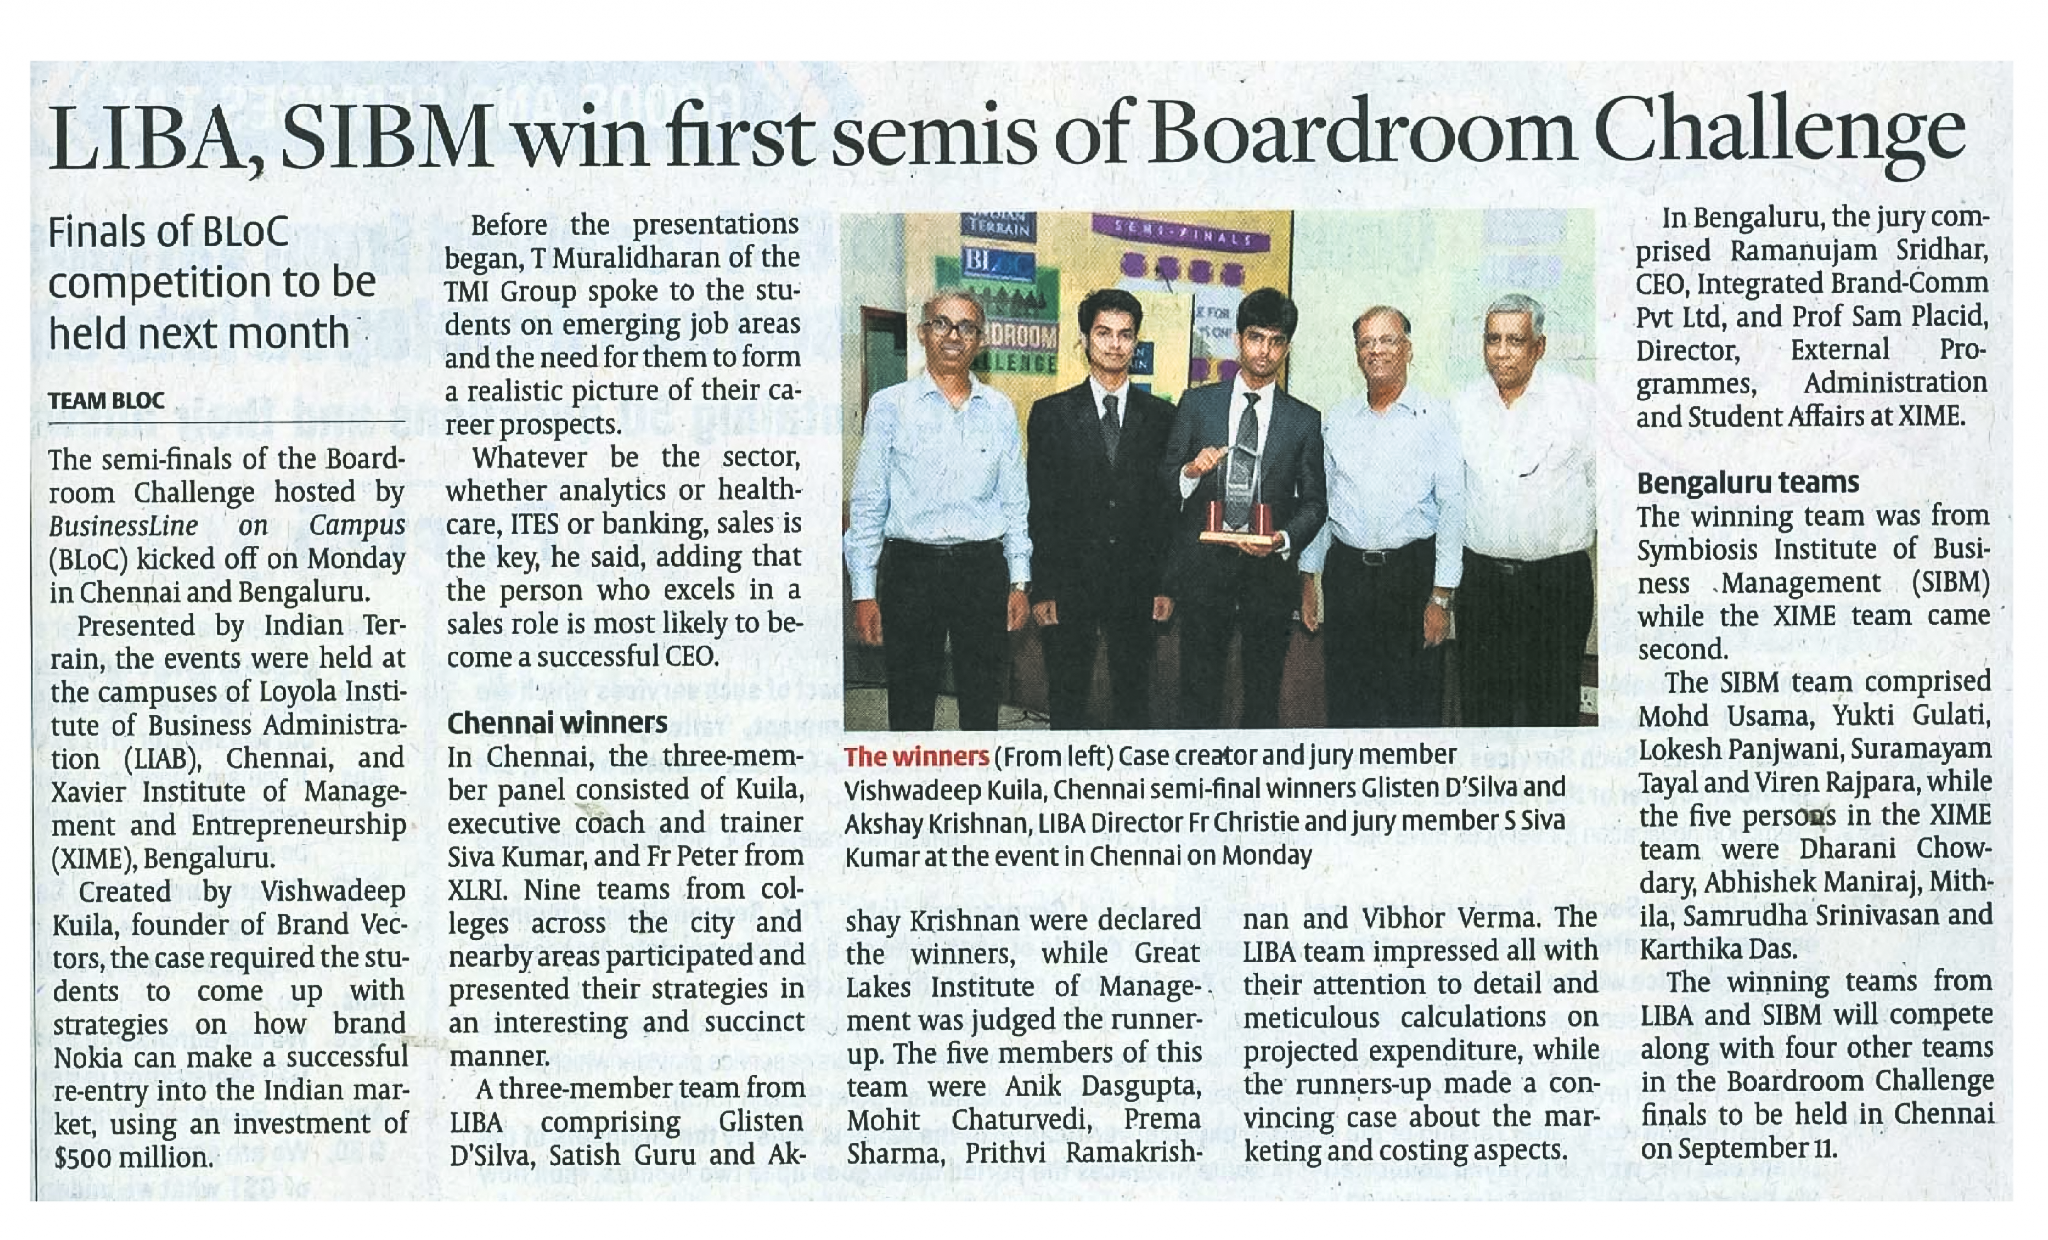 The Hindu - Business Line - 30.08.2017